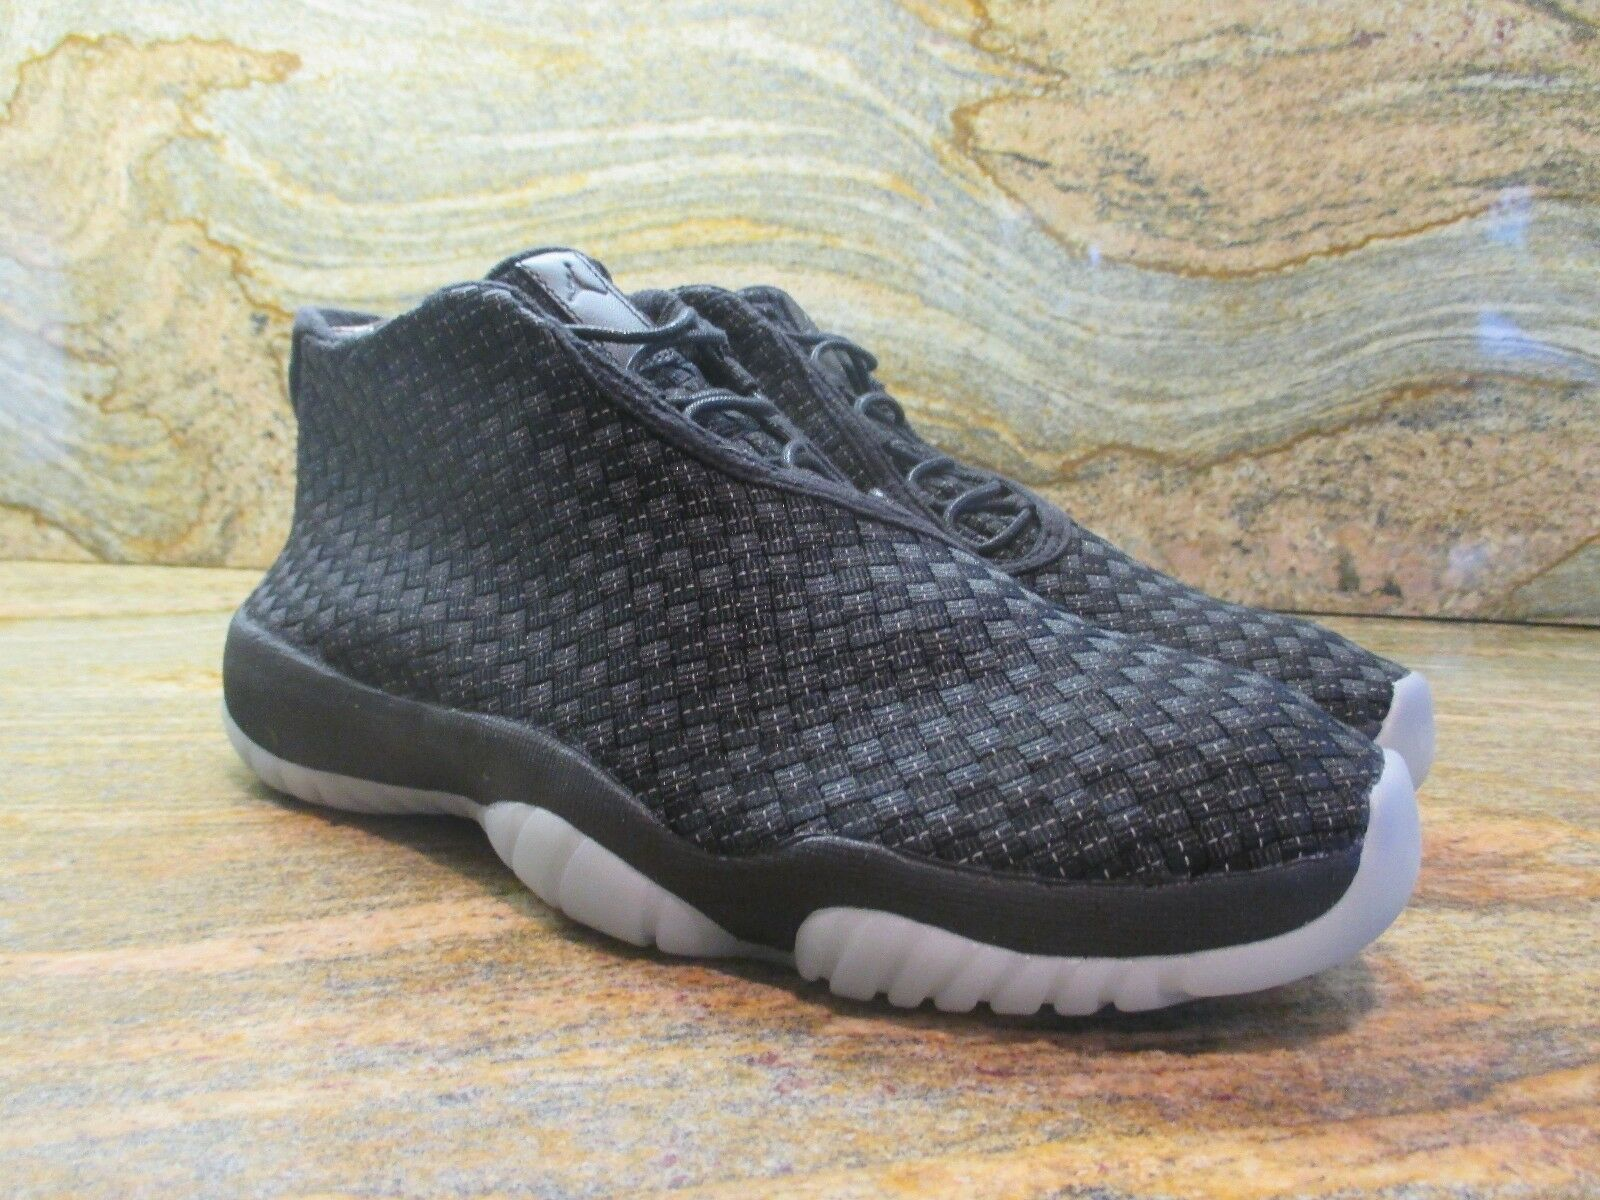 separation shoes 88658 dfa3f ... Nike Air Jordan Future Premium Premium Premium Promo Sample SZ 9 Black  3M Glow GID OG ...